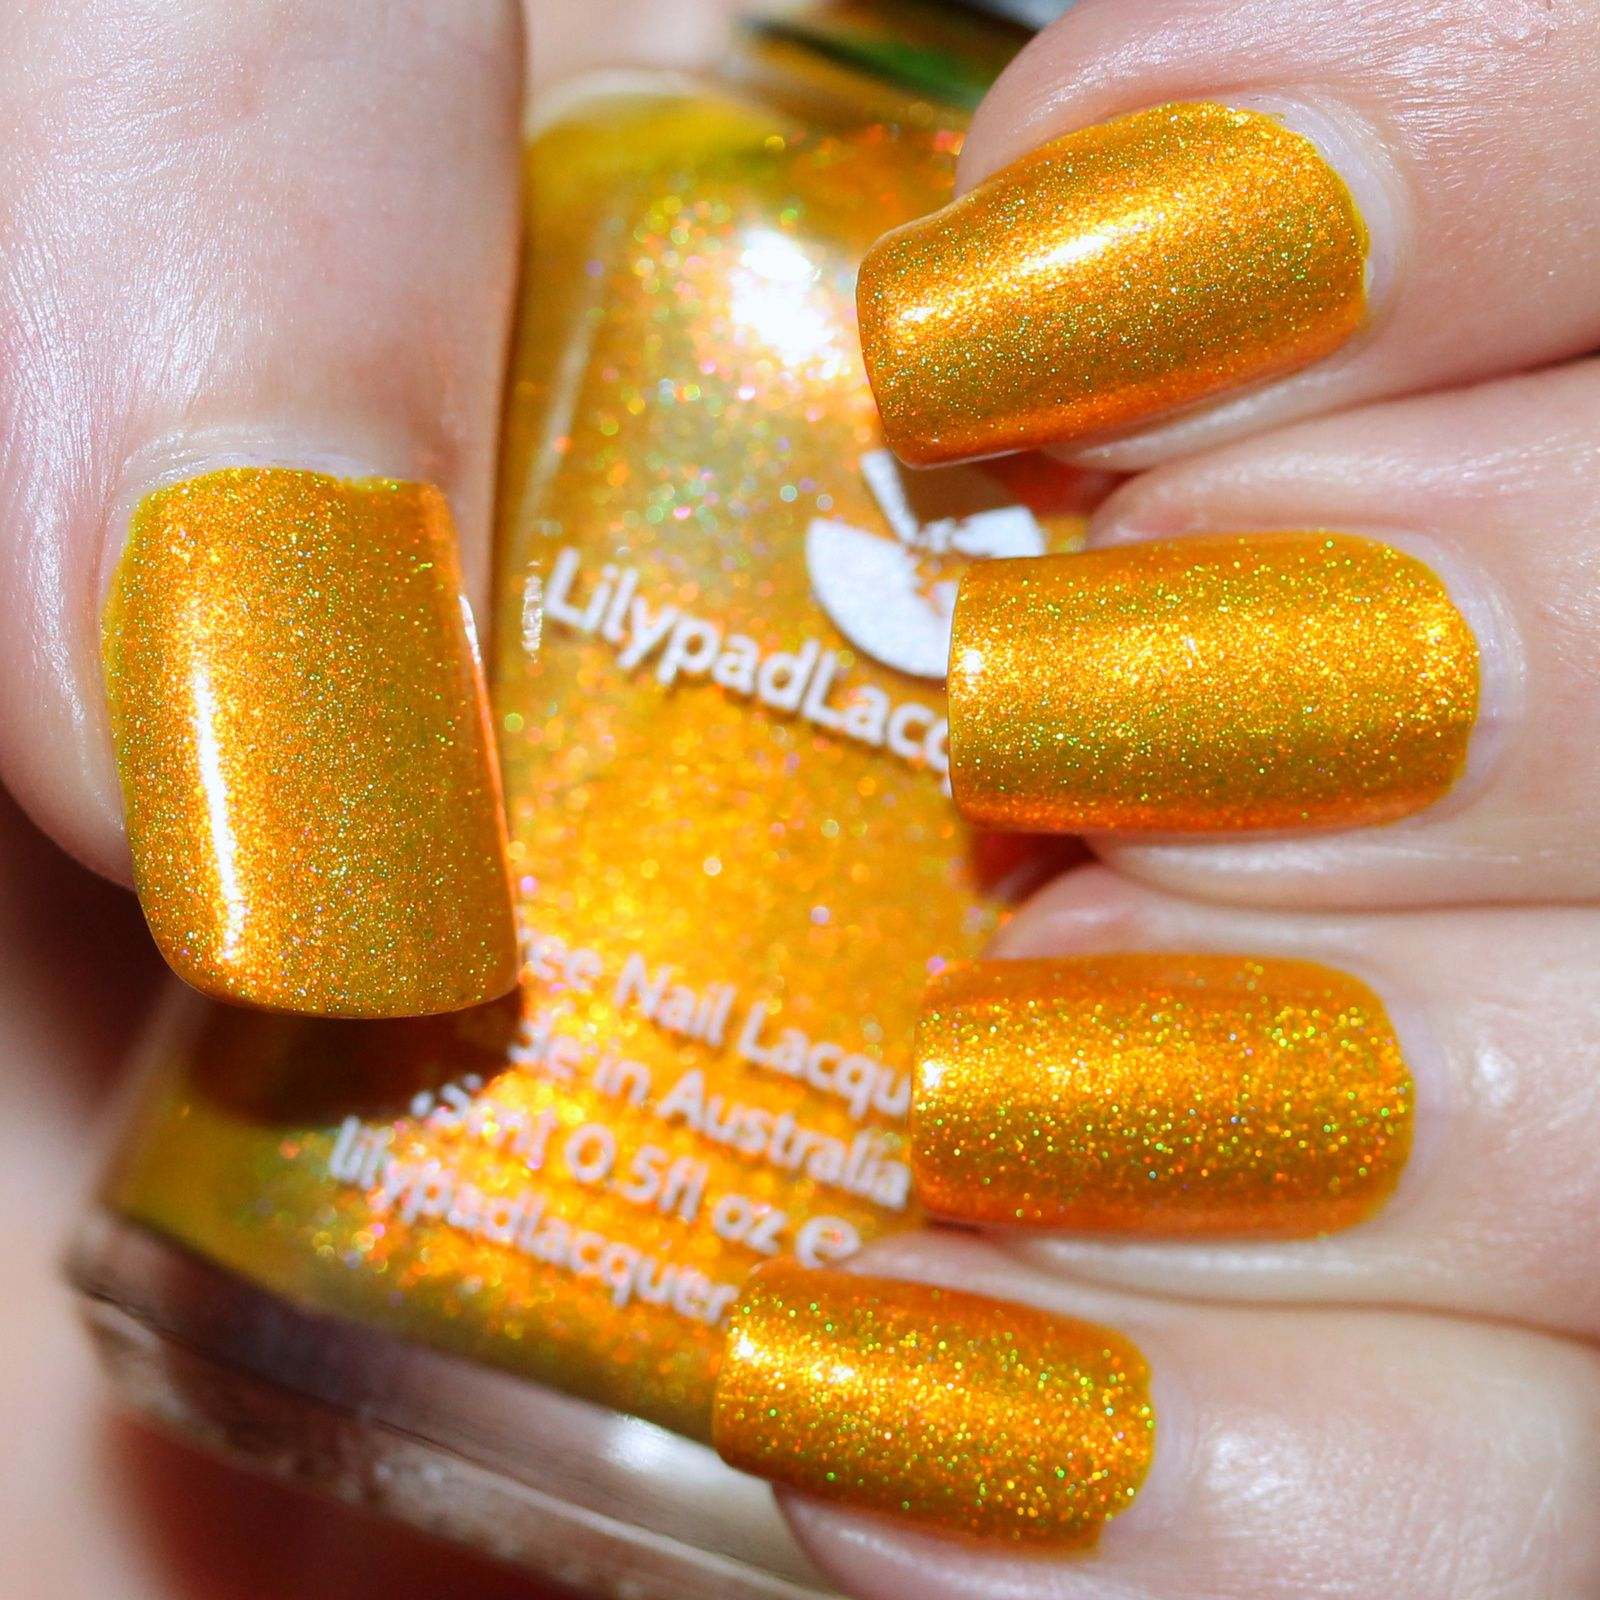 Essie Protein Base Coat / Lilypad Lacquer Harvest Moon / Sally Hansen Miracle Gel Top Coat